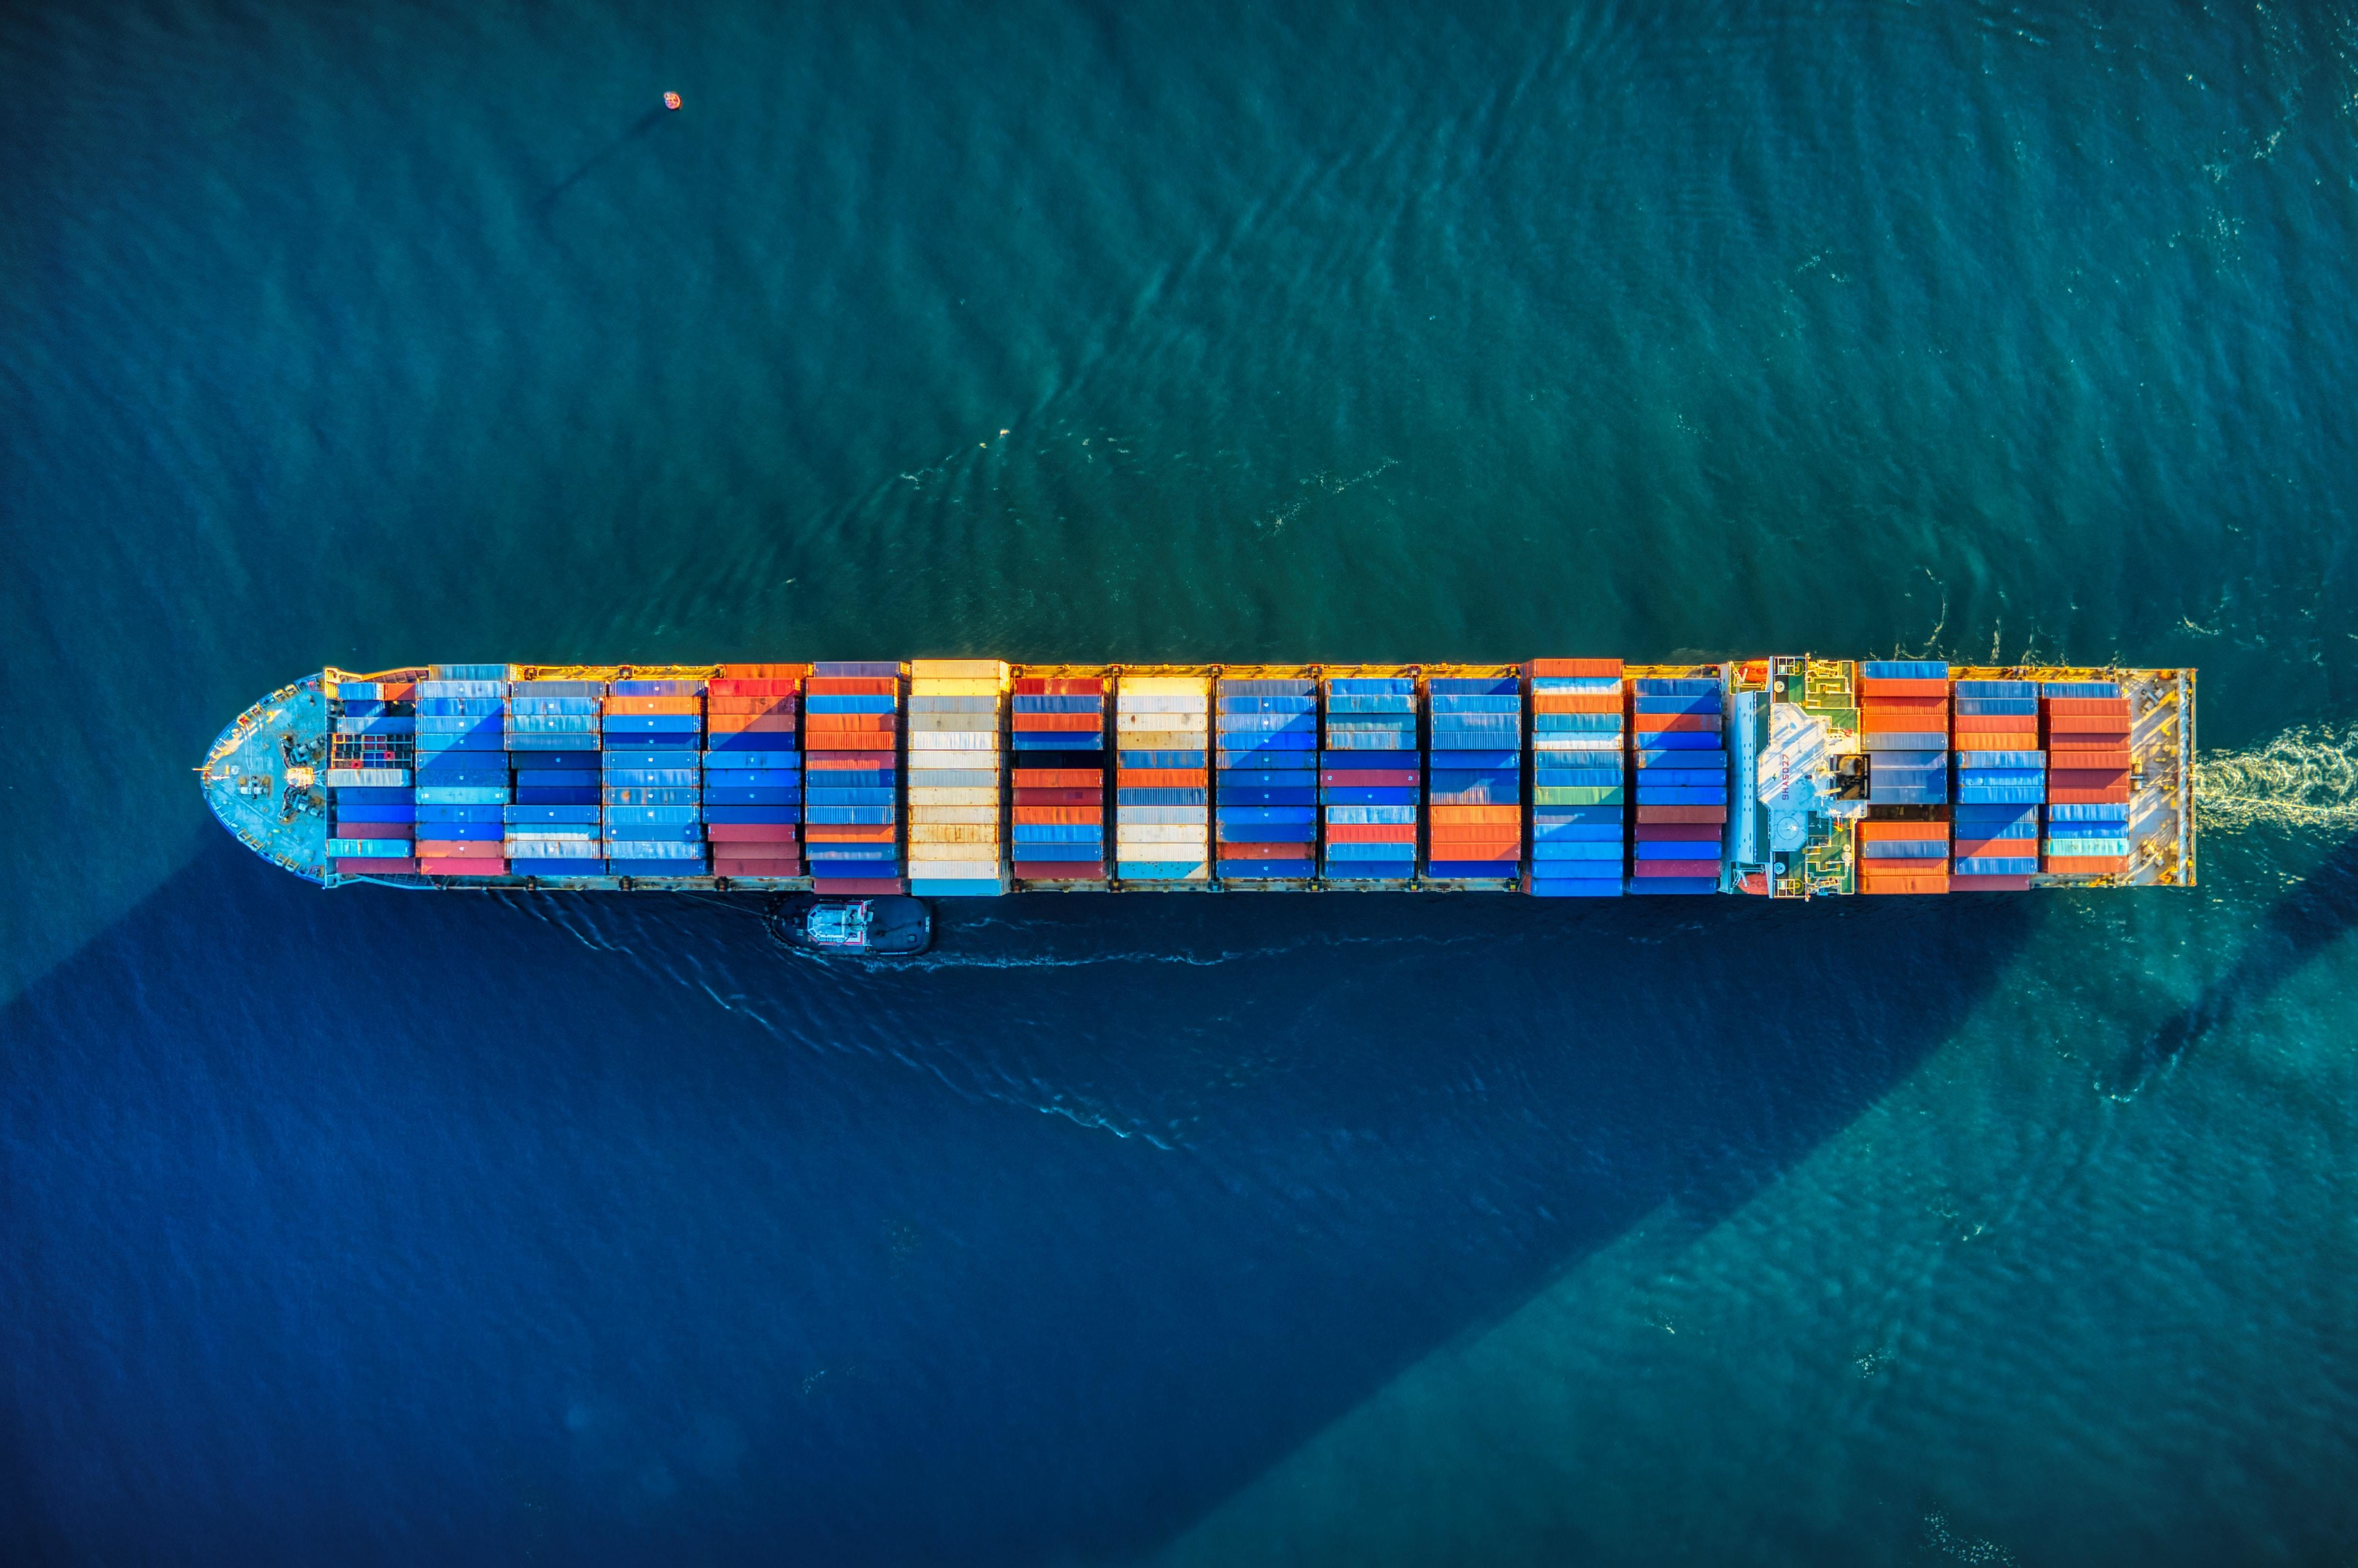 Large ship with containers, sea, overhead shot; supply chain, transportation, freight, shipping.